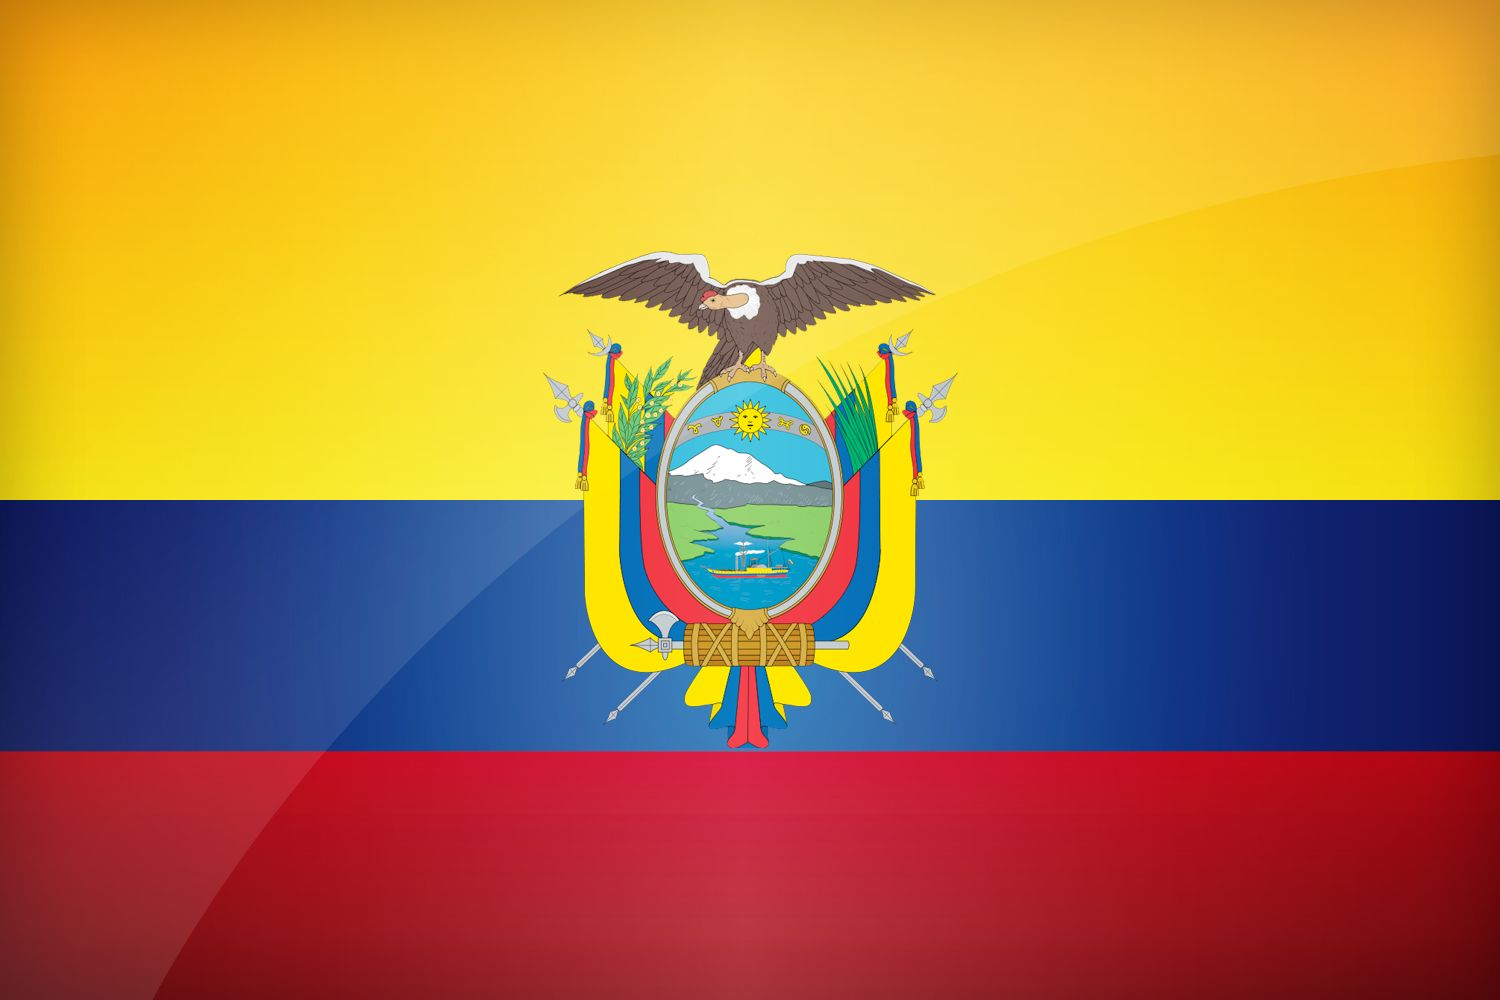 1500x1000 Colombia Football Wallpaper